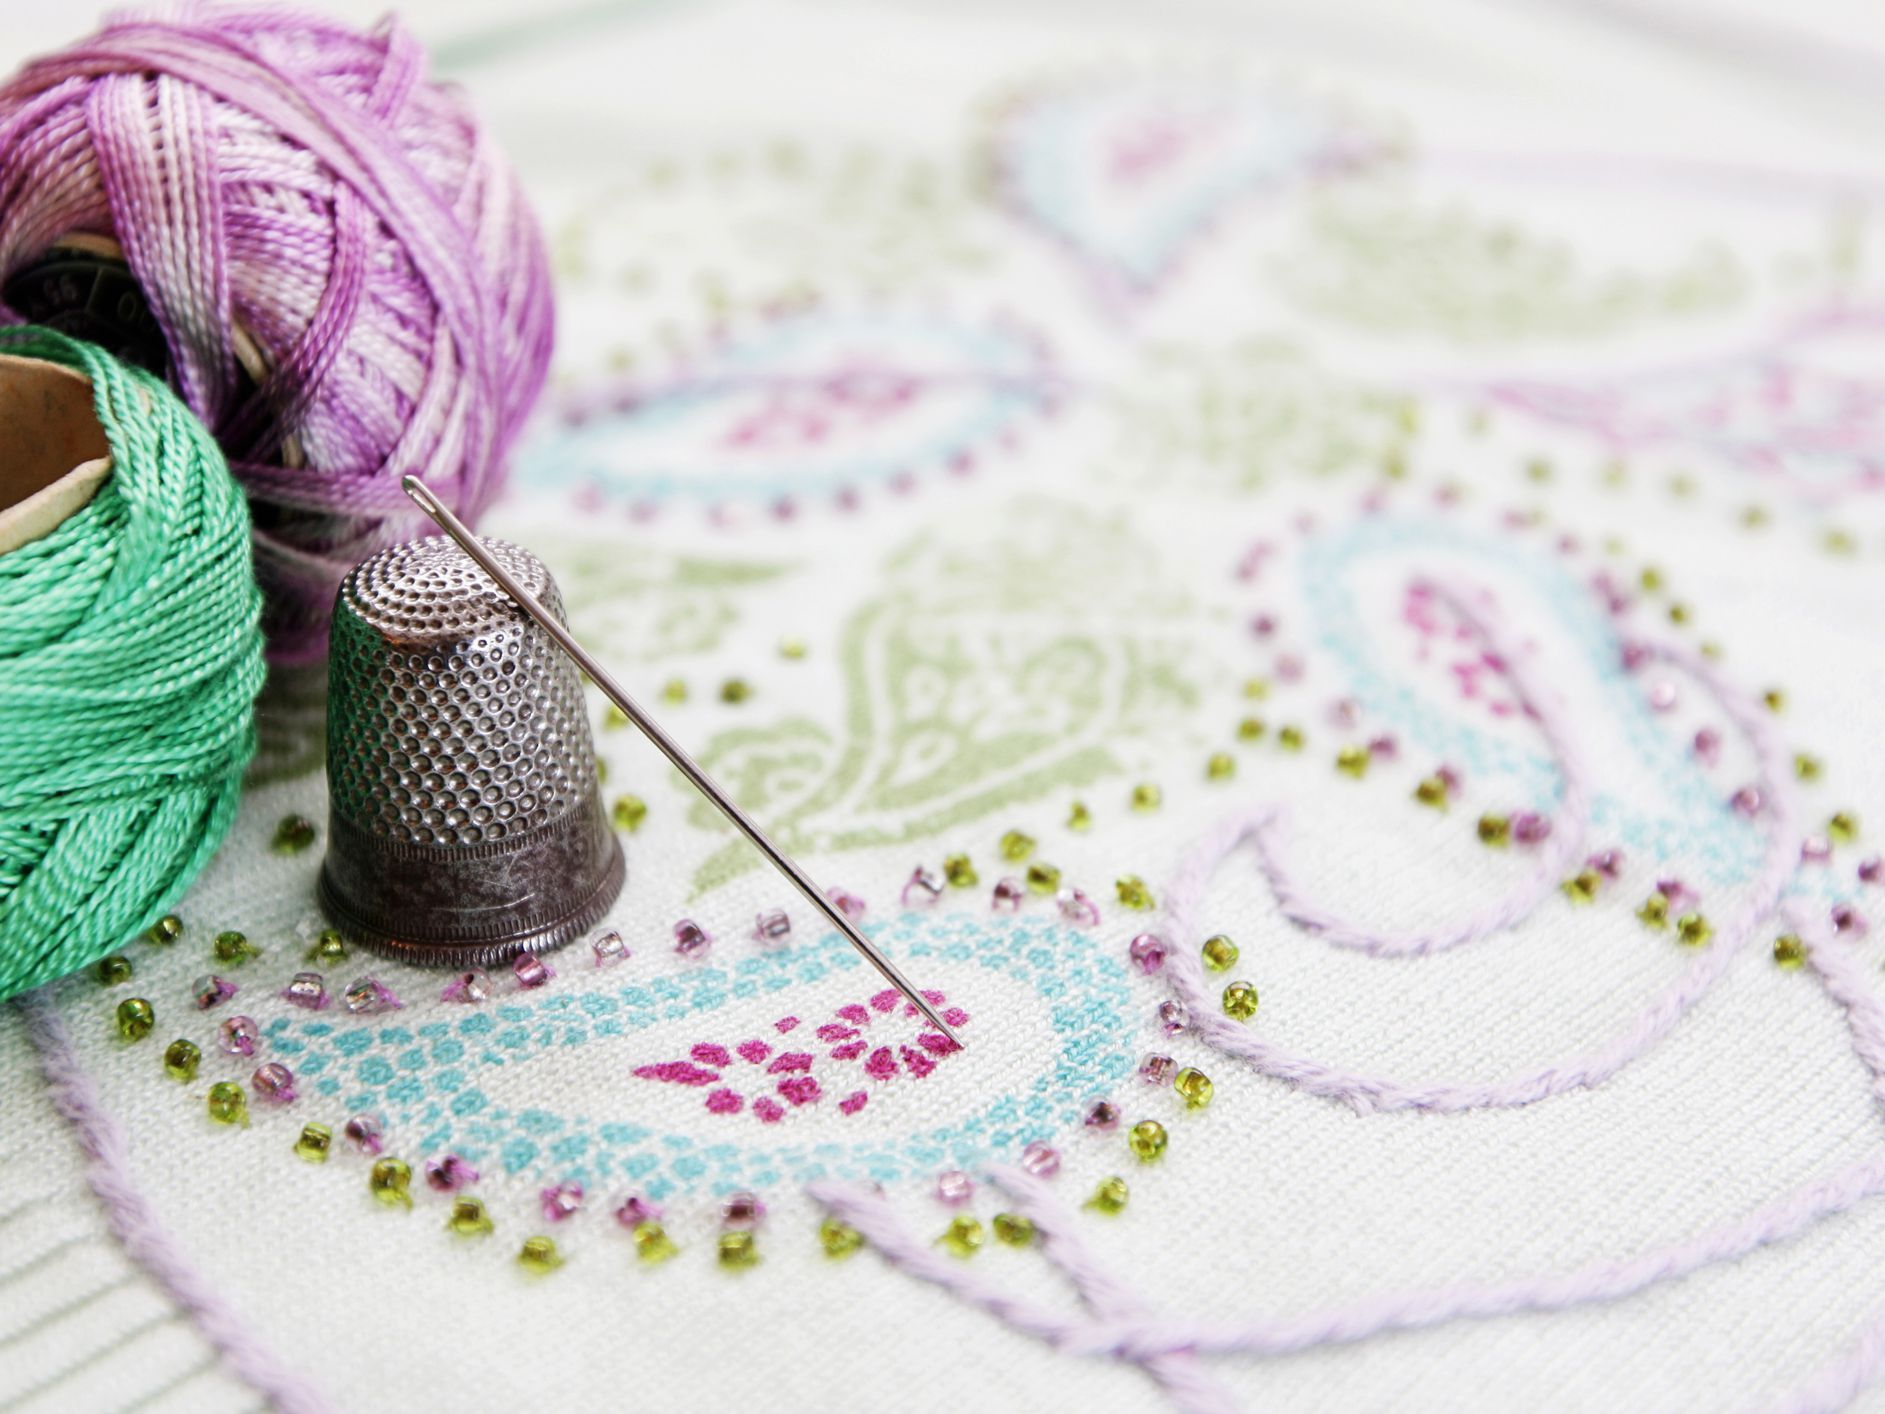 Fabric /• Paper /• Thread 26 Projects to Sew /& Embellish /• 25 Embroidery Stitches